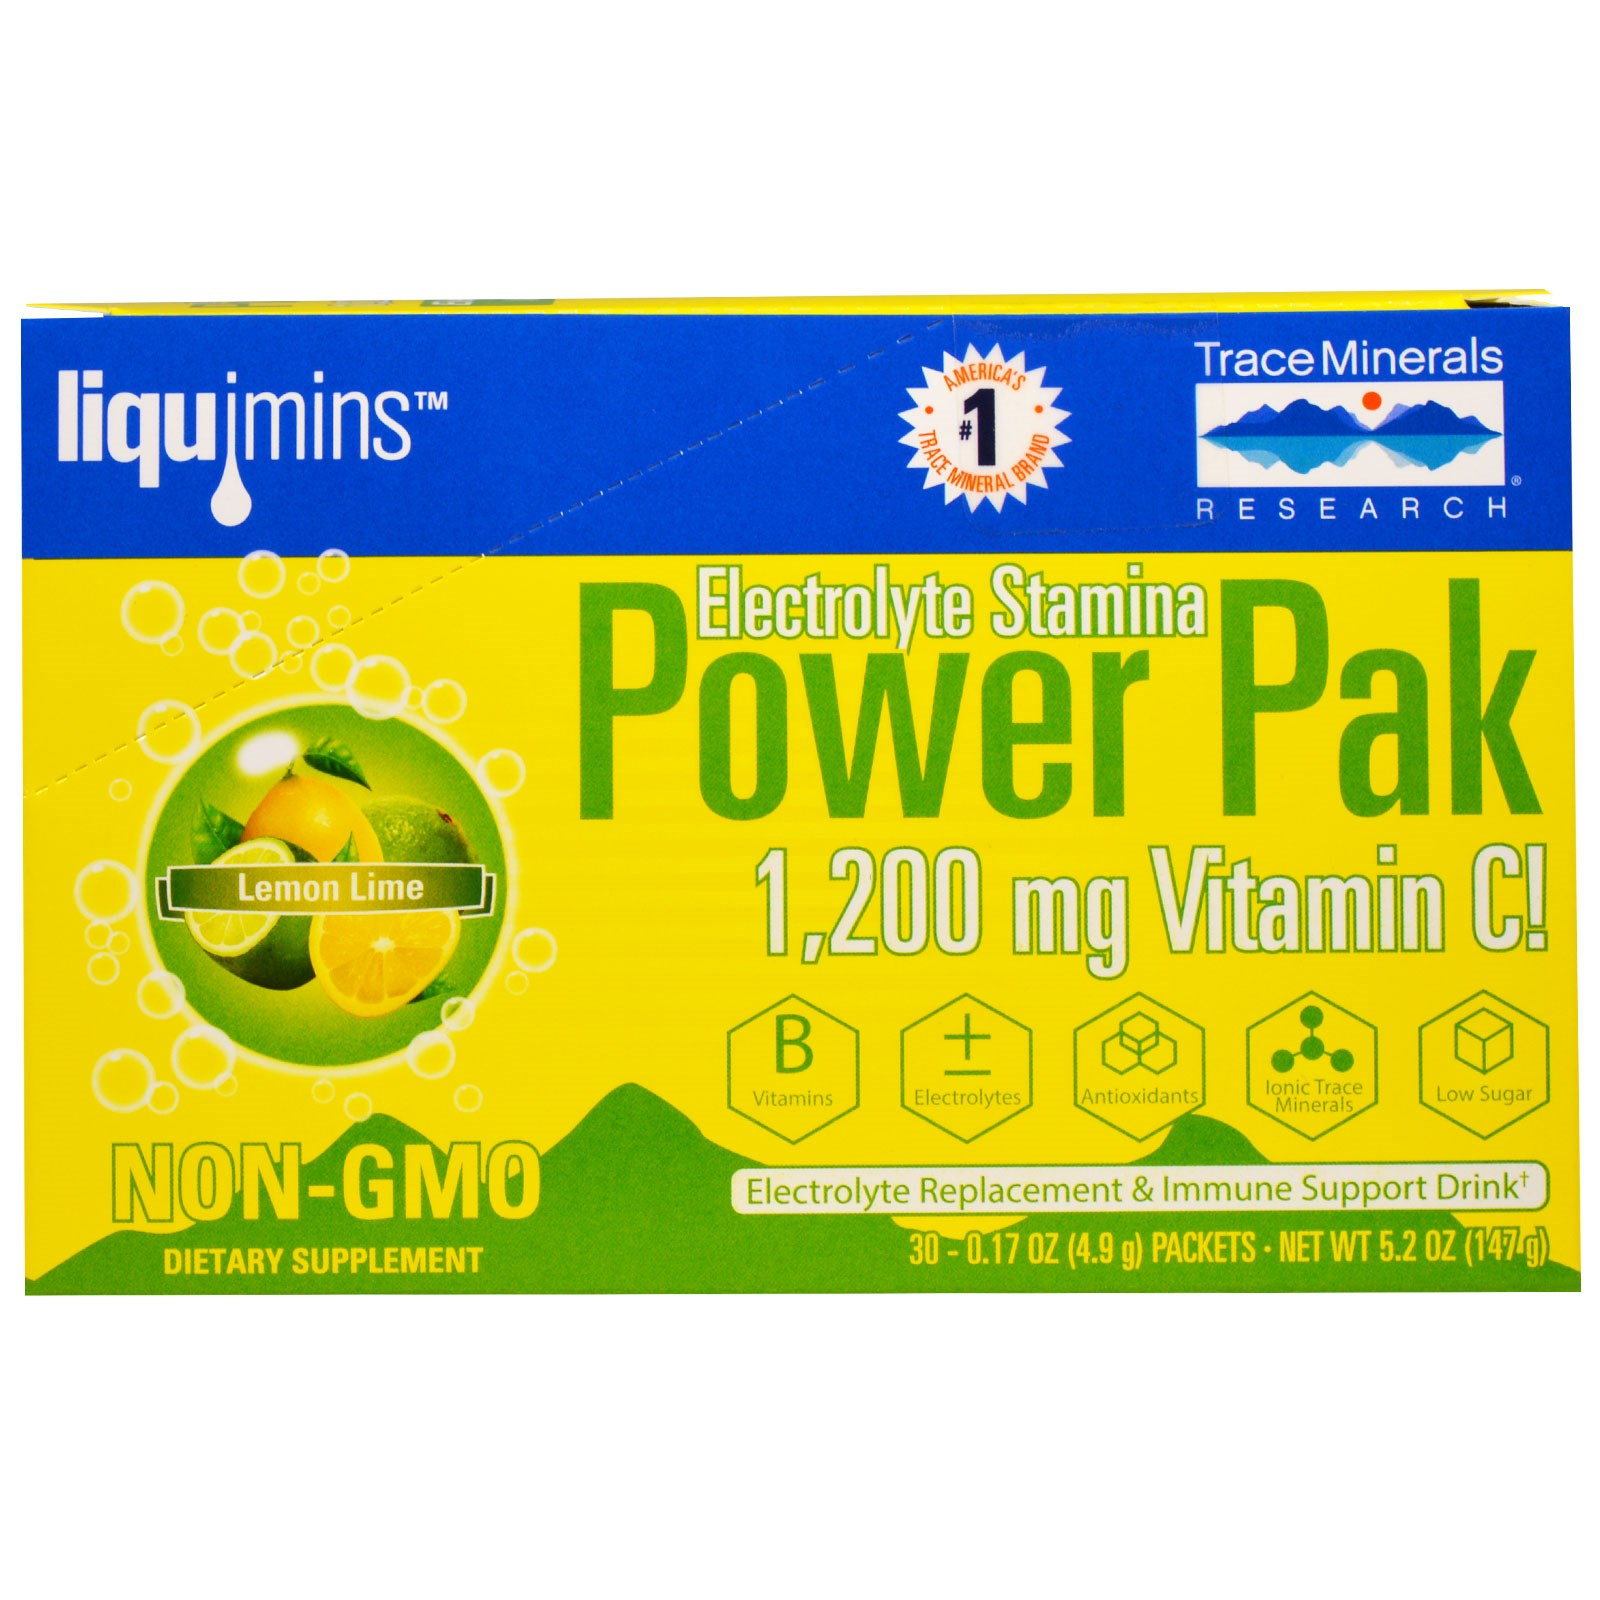 Image of Electrolyte Stamina, Power Pak, Lemon Lime (30 Packets, 4.9 g Each) - Trace Minerals Research 0878941000522